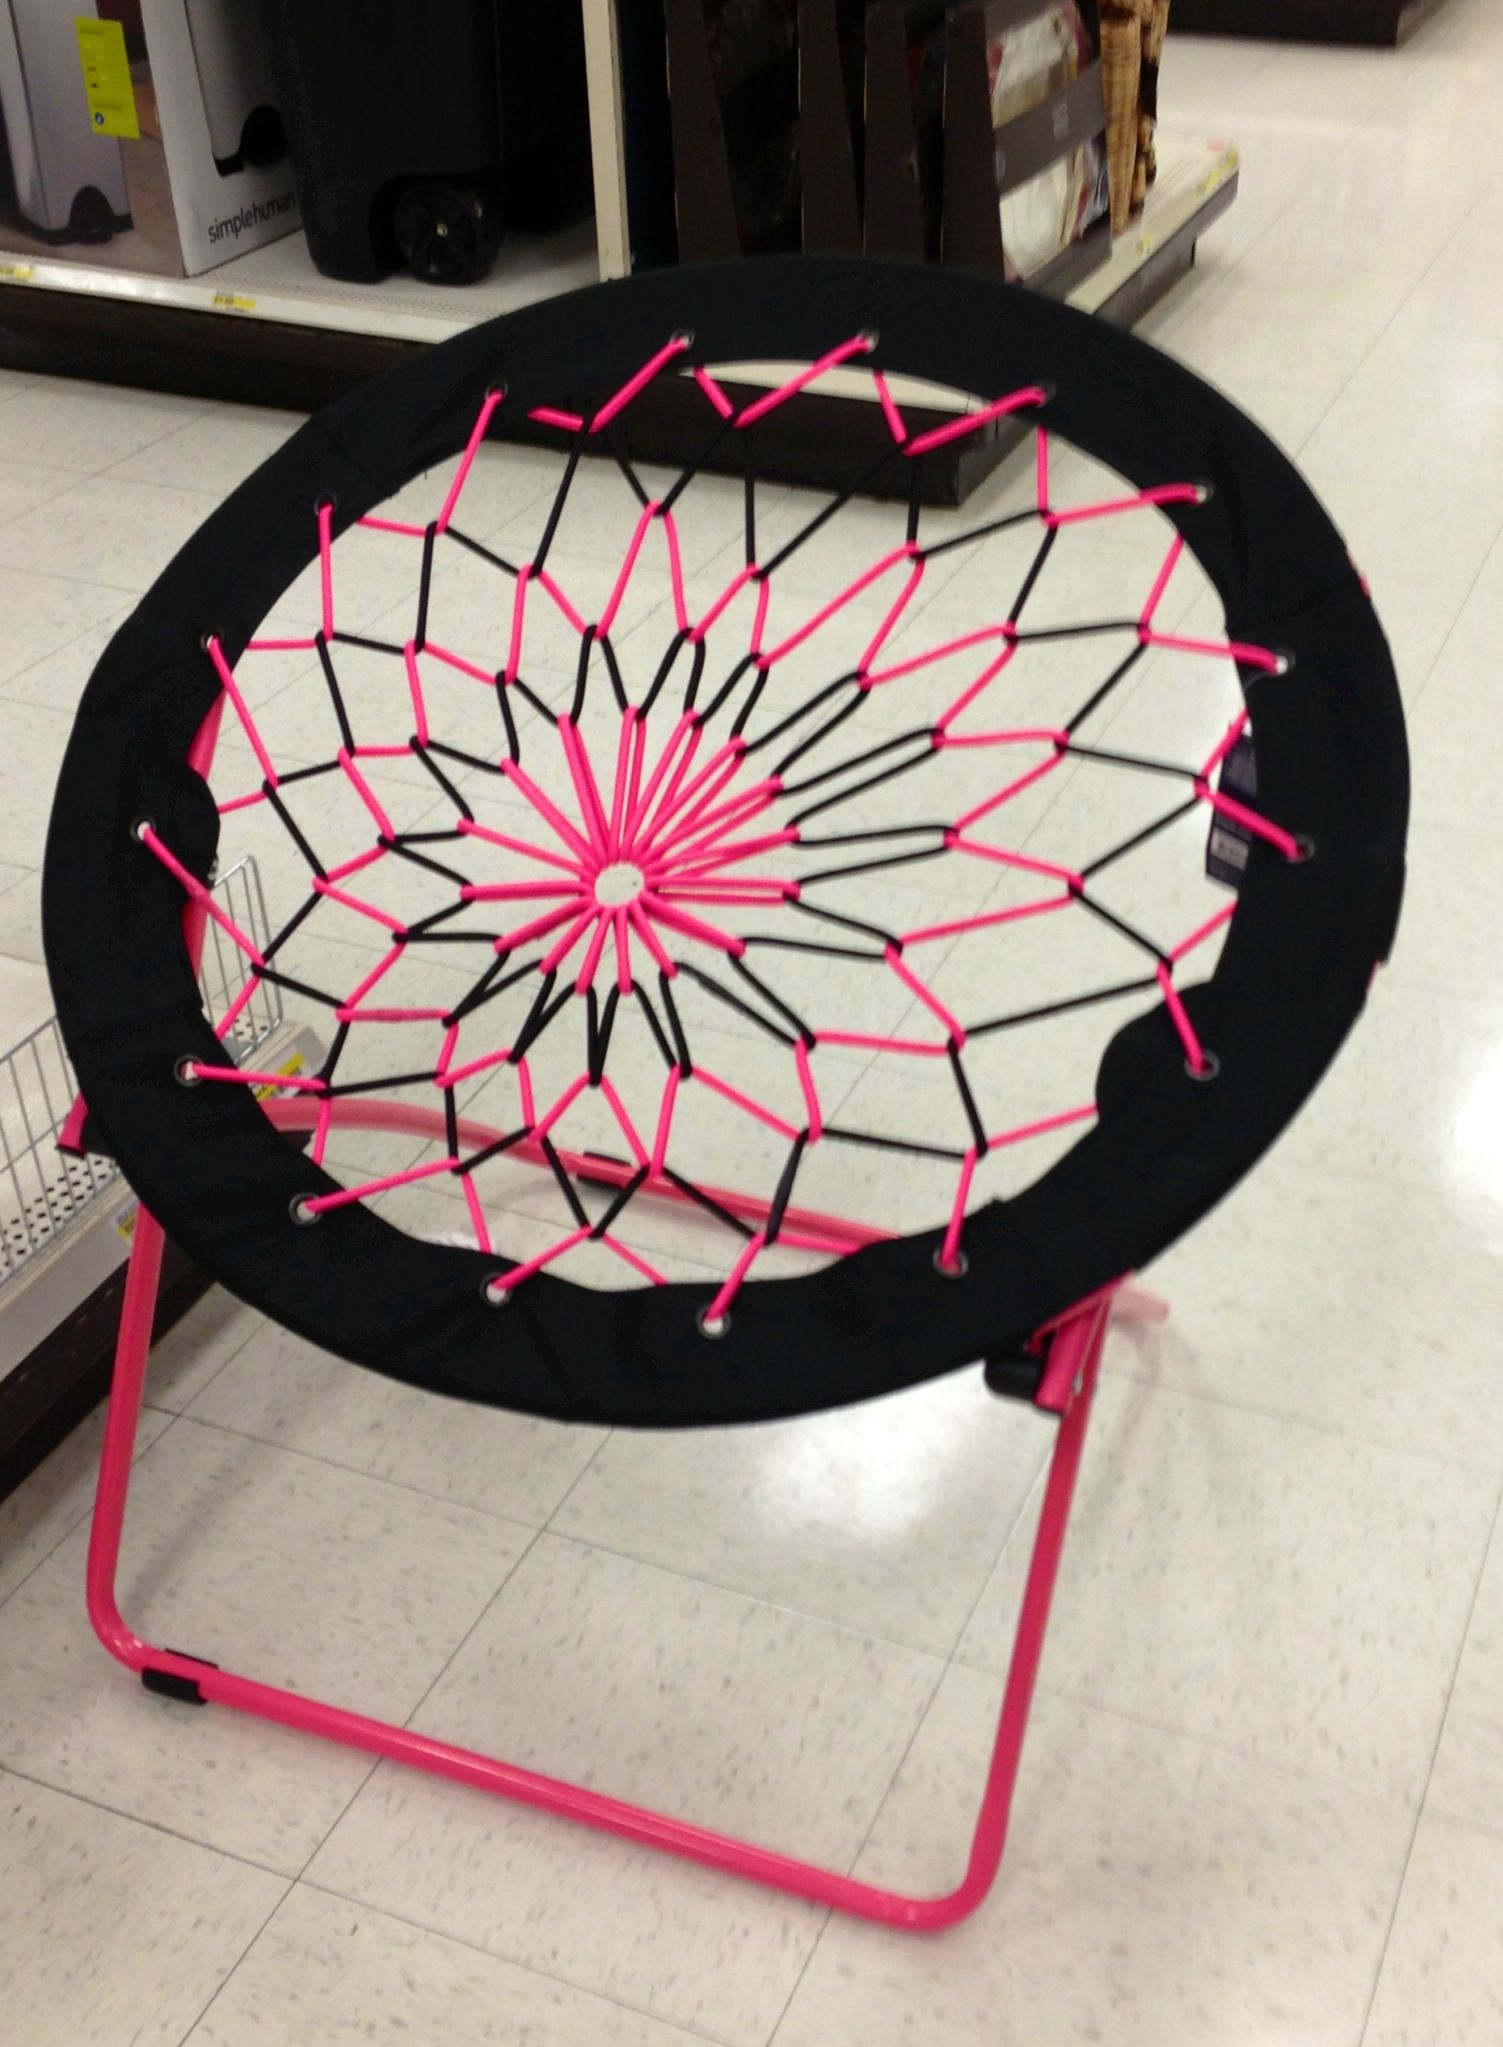 Chairs From Target Bungee Chair So Fun I Want One From Target My Dream